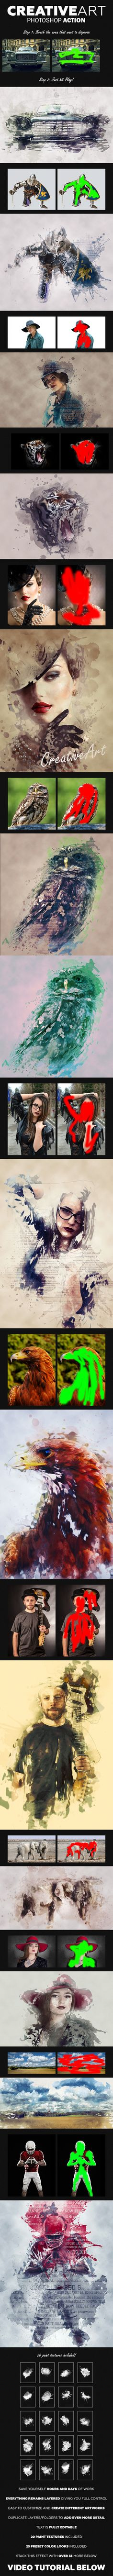 CreativeArt Photoshop Action  — PNG Image #effect #tutorial • Download ➝ https://graphicriver.net/item/creativeart-photoshop-action/15380487?ref=pxcr